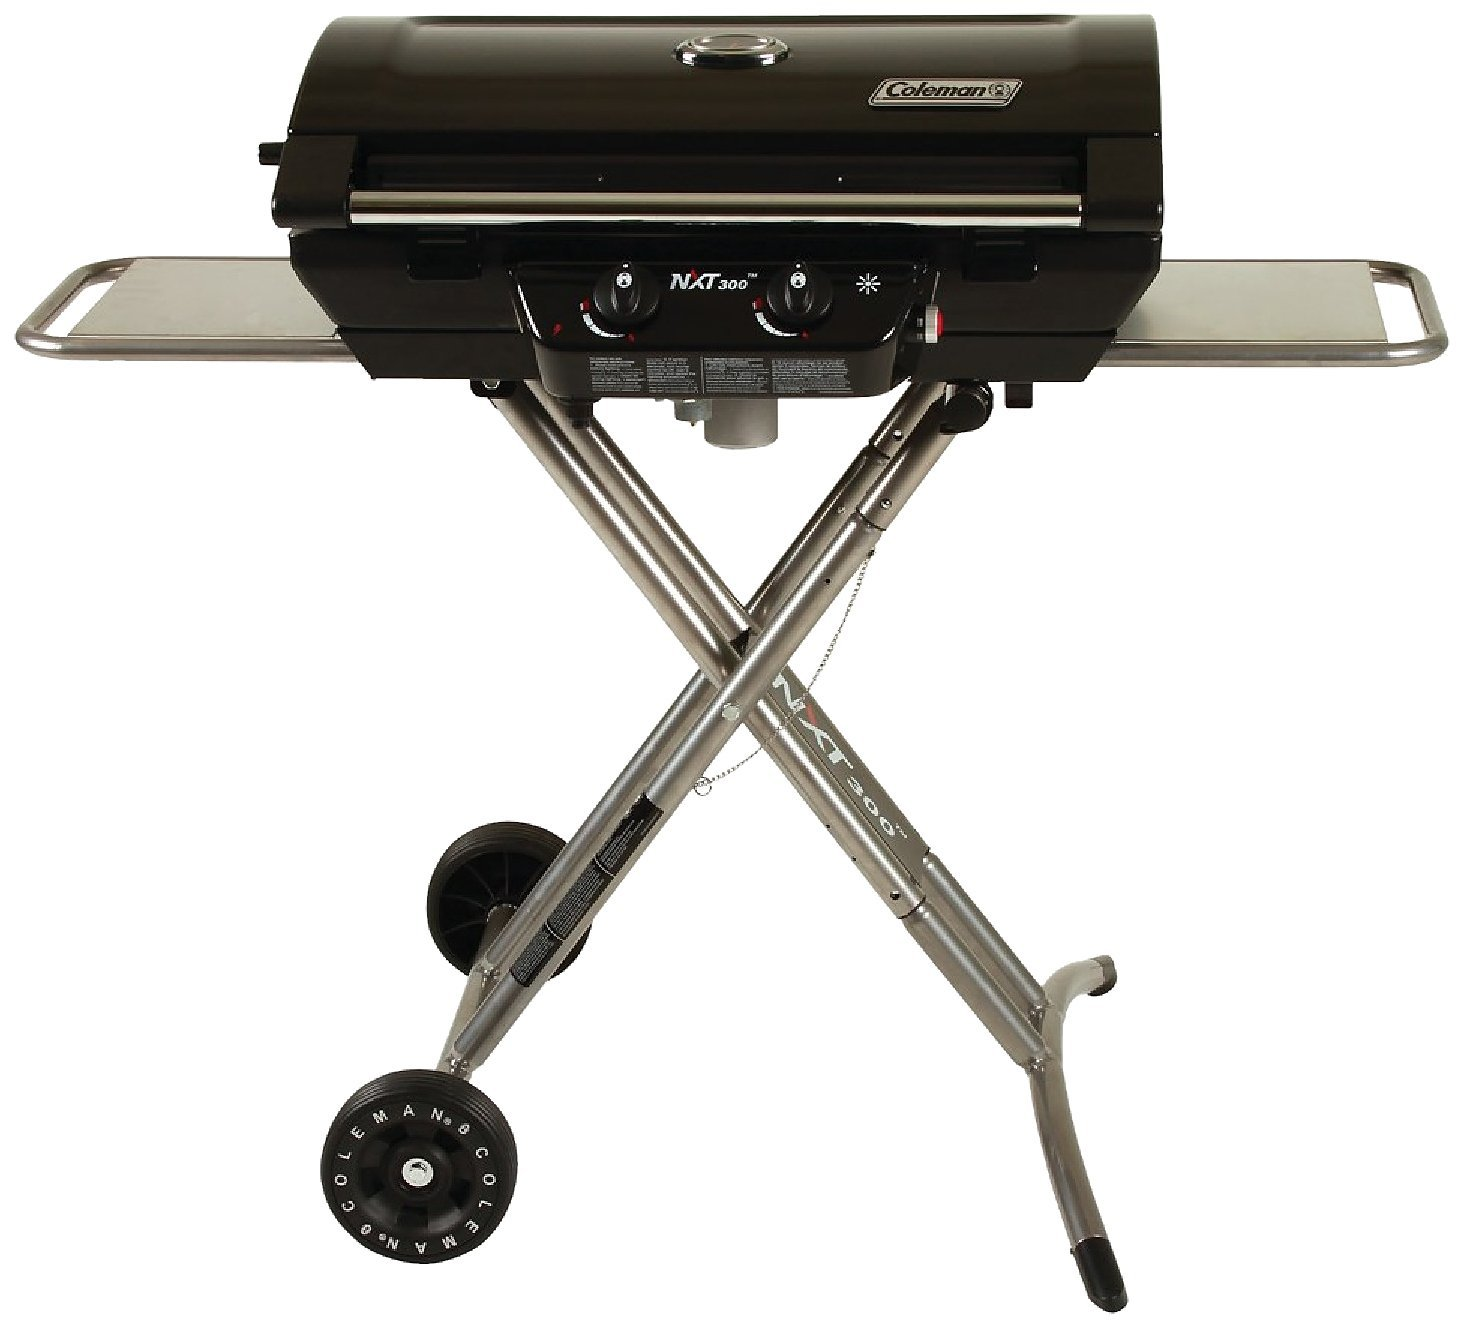 Coleman NXT 200 Grill 312 sq.in by The Coleman Company